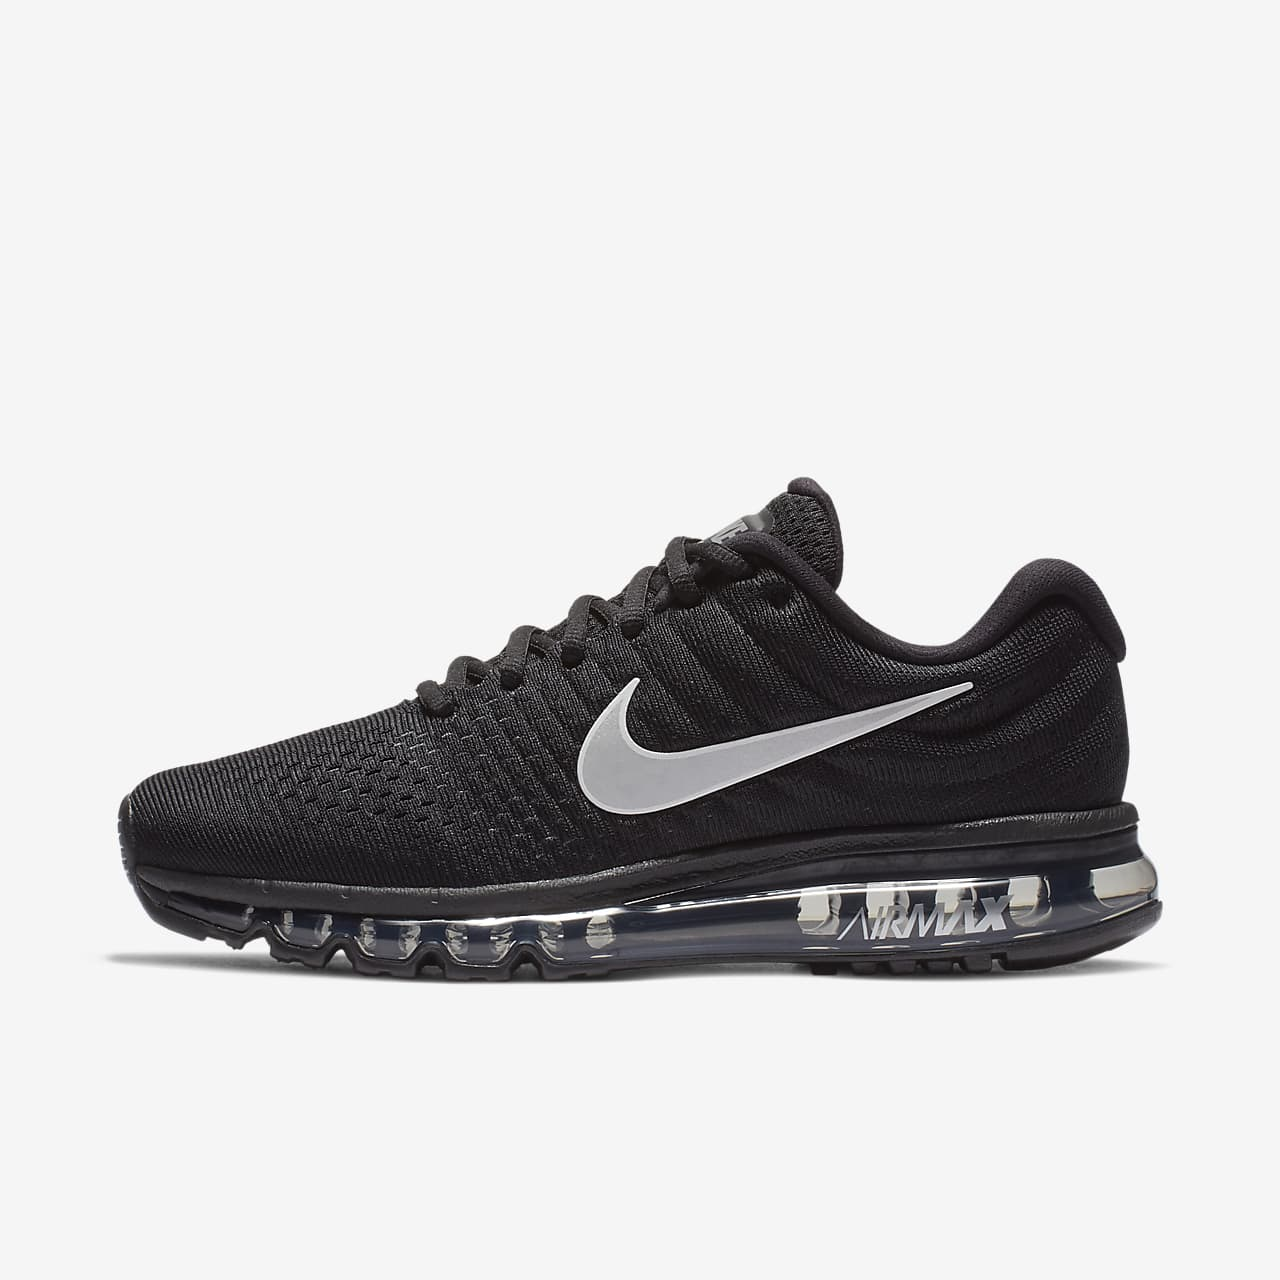 Nike Air Max Ltd 2002 Calendrier